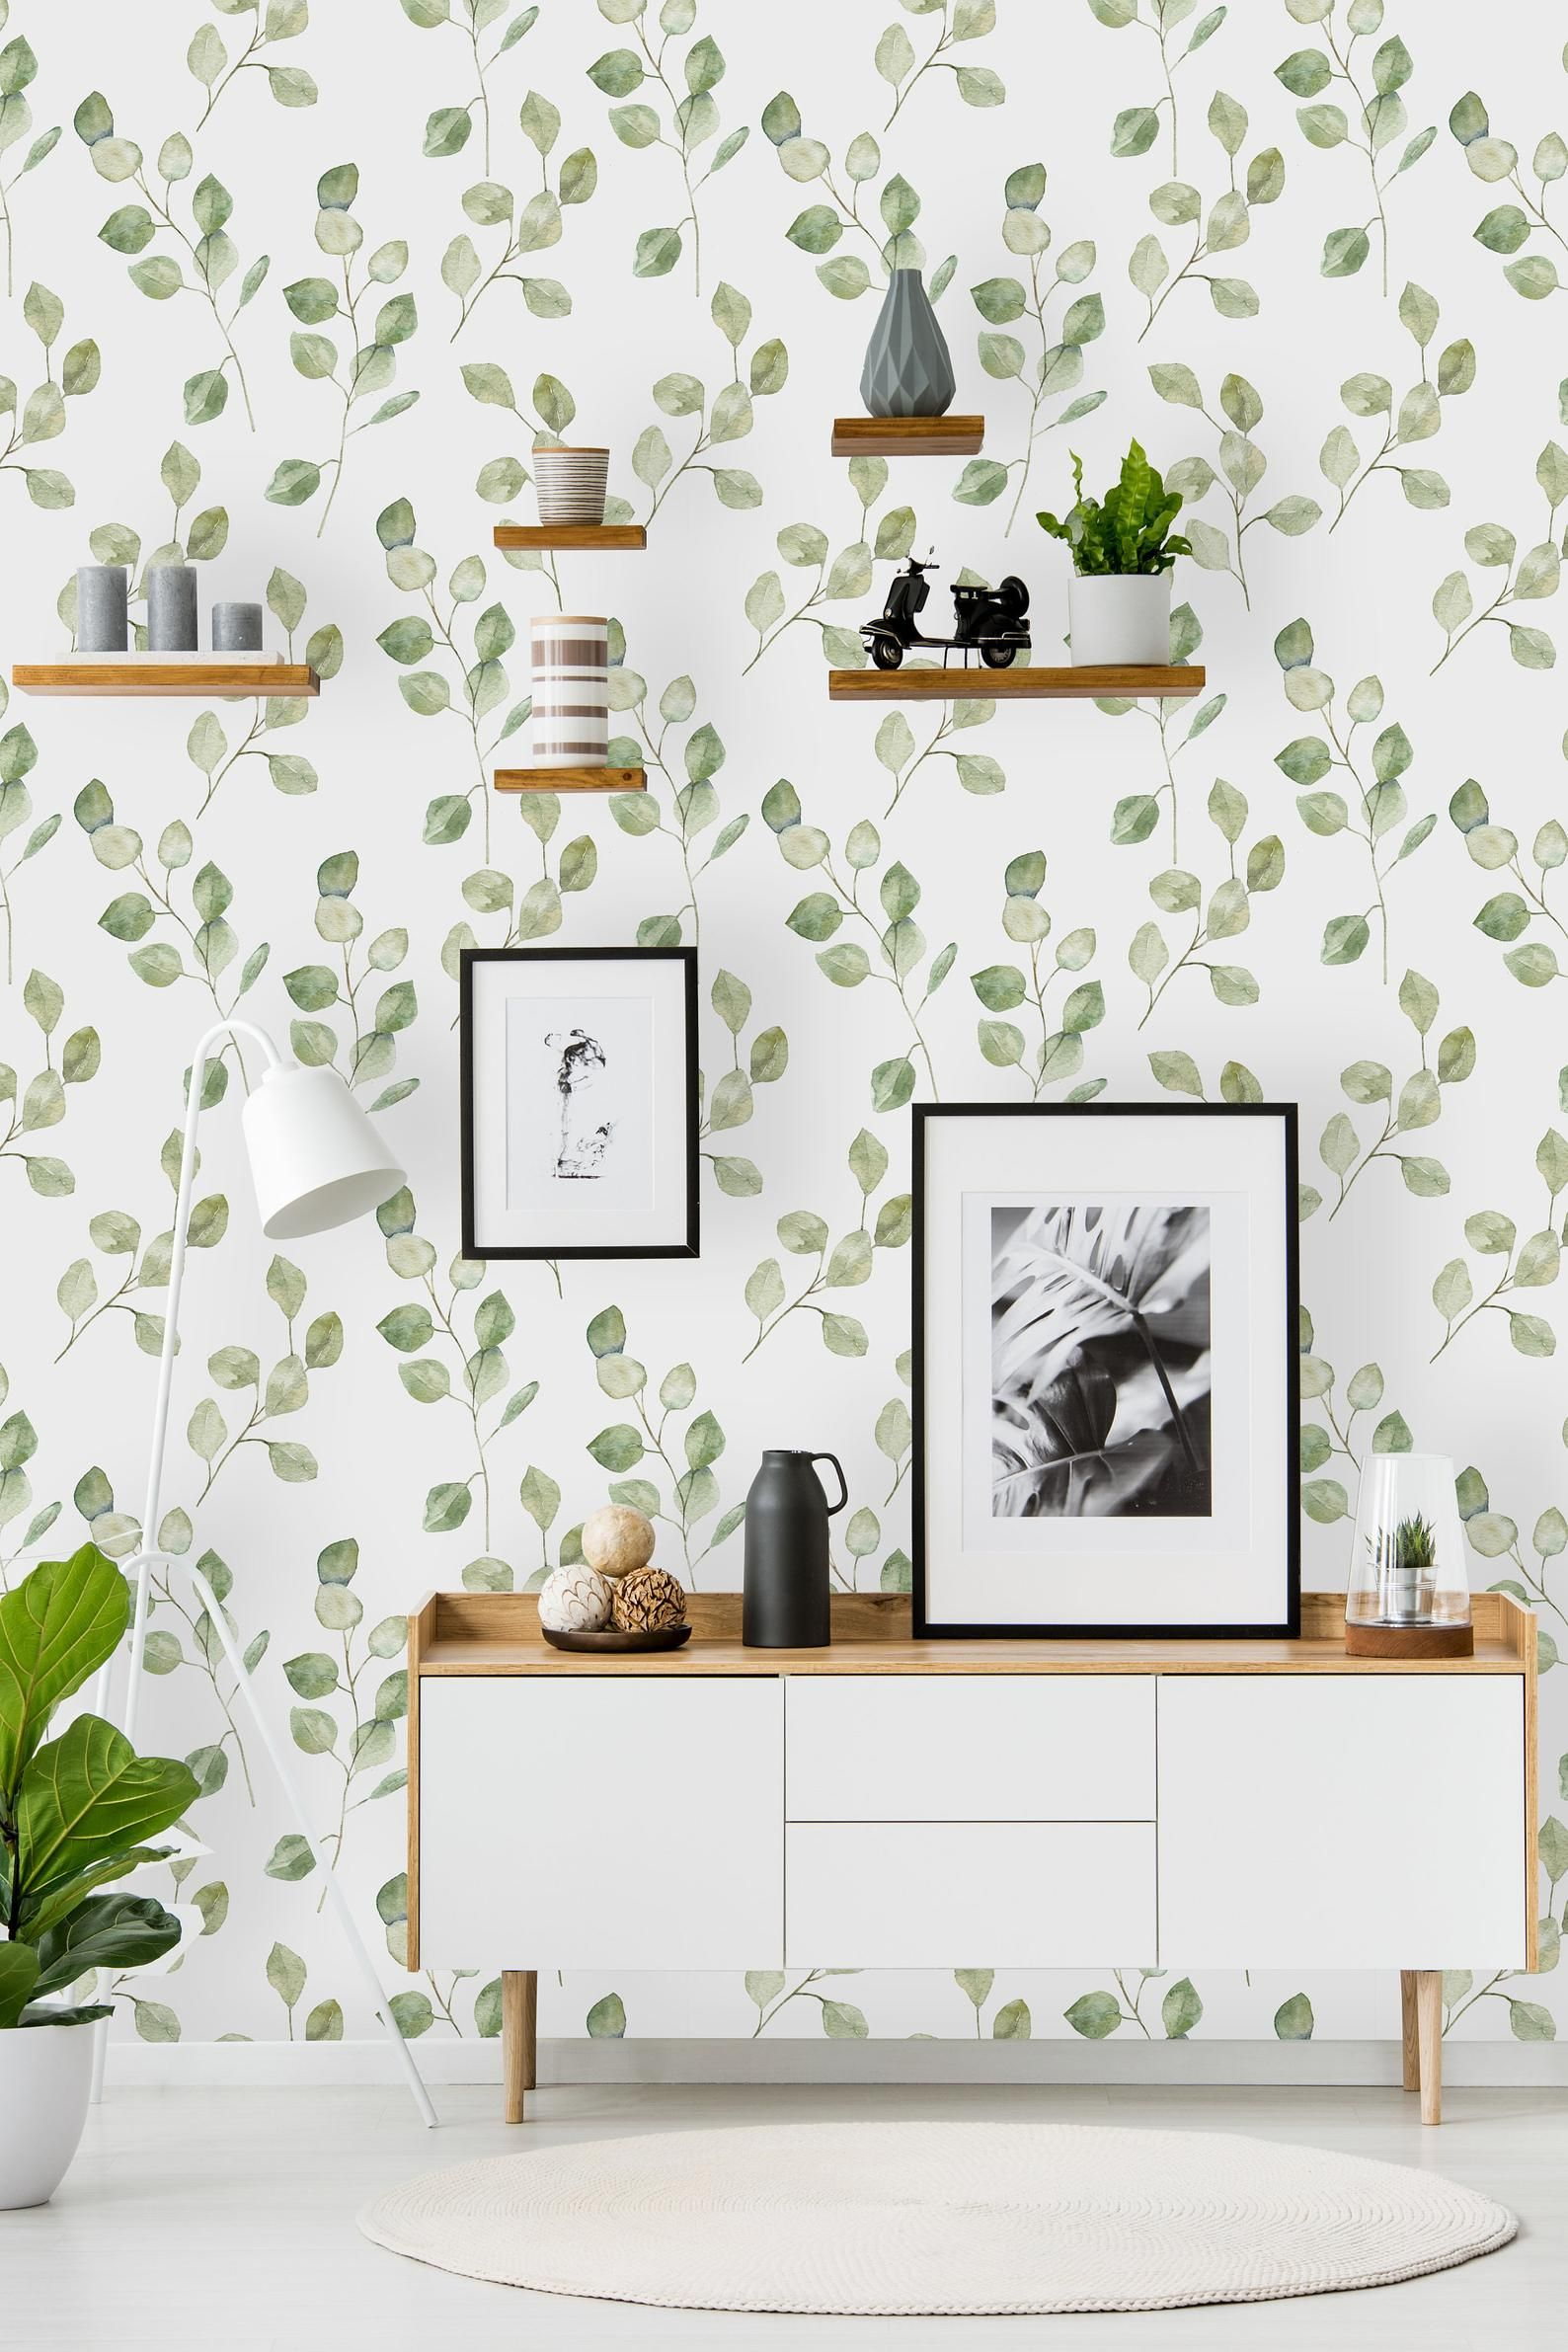 Removable Wallpaper Peel And Stick Wallpaper Self Adhesive Etsy Peel And Stick Wallpaper Removable Wallpaper Stick On Wallpaper